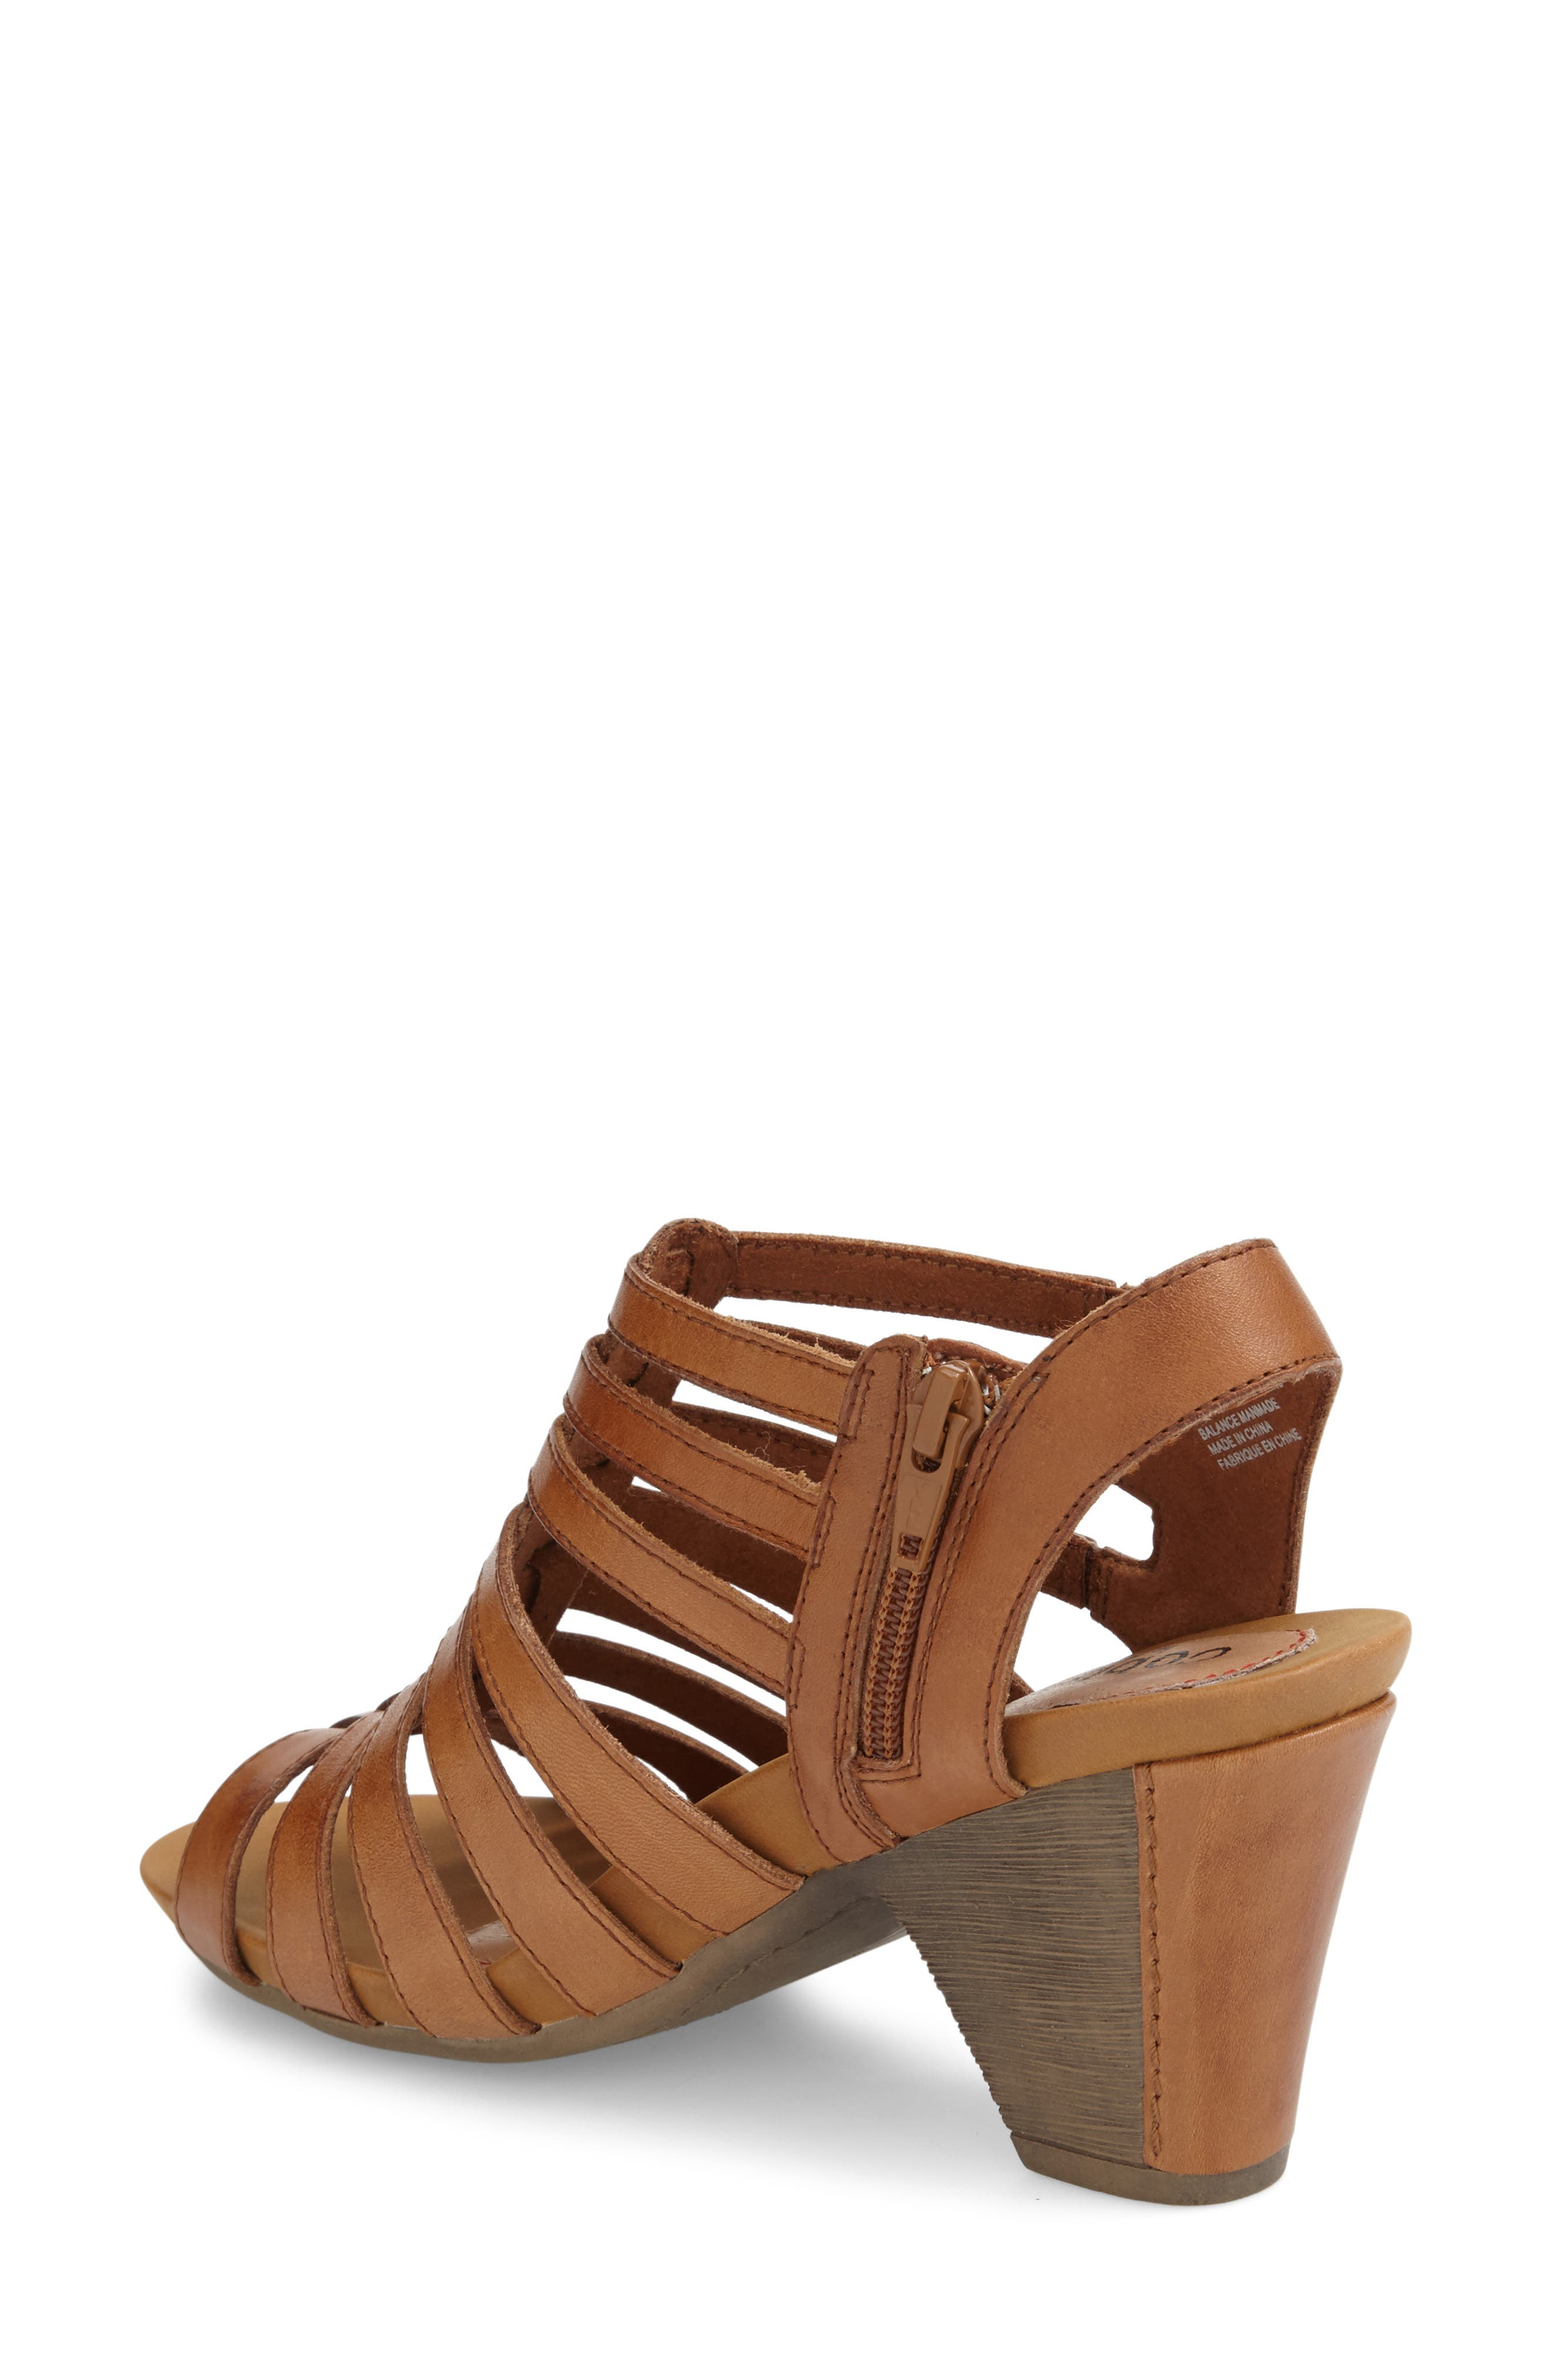 'Taylor' Caged Sandal,                             Alternate thumbnail 6, color,                             TAN LEATHER